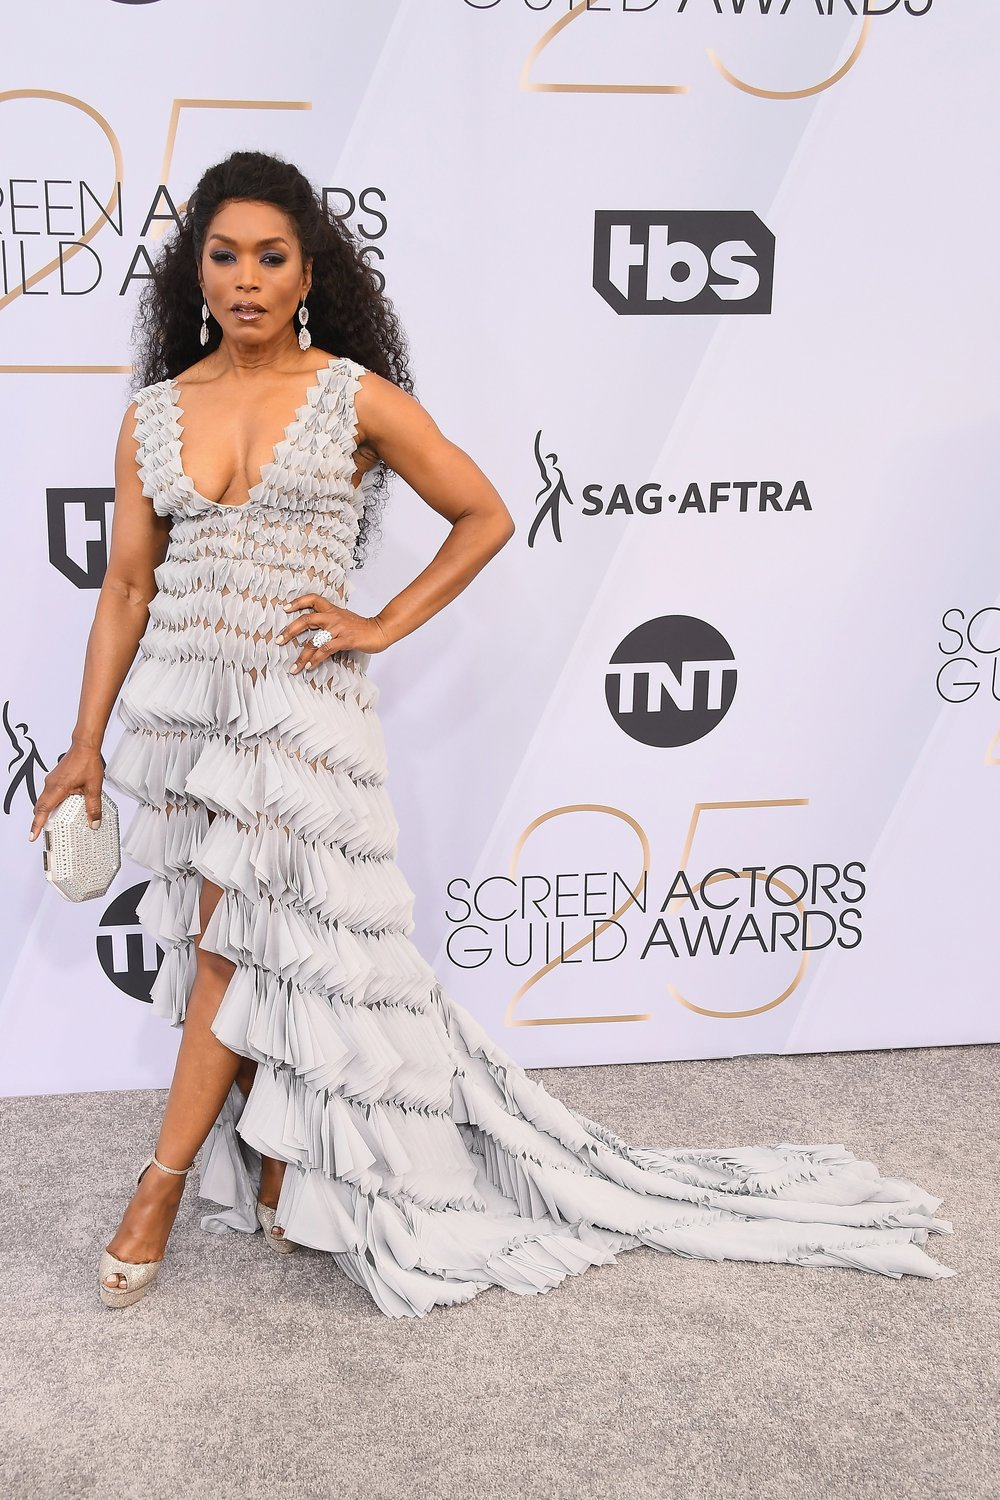 - Angela Bassett in Georges Chakra, Casadei shoes, a Tadashi Shoji Clutch, and Kimberly McDonald jewelry